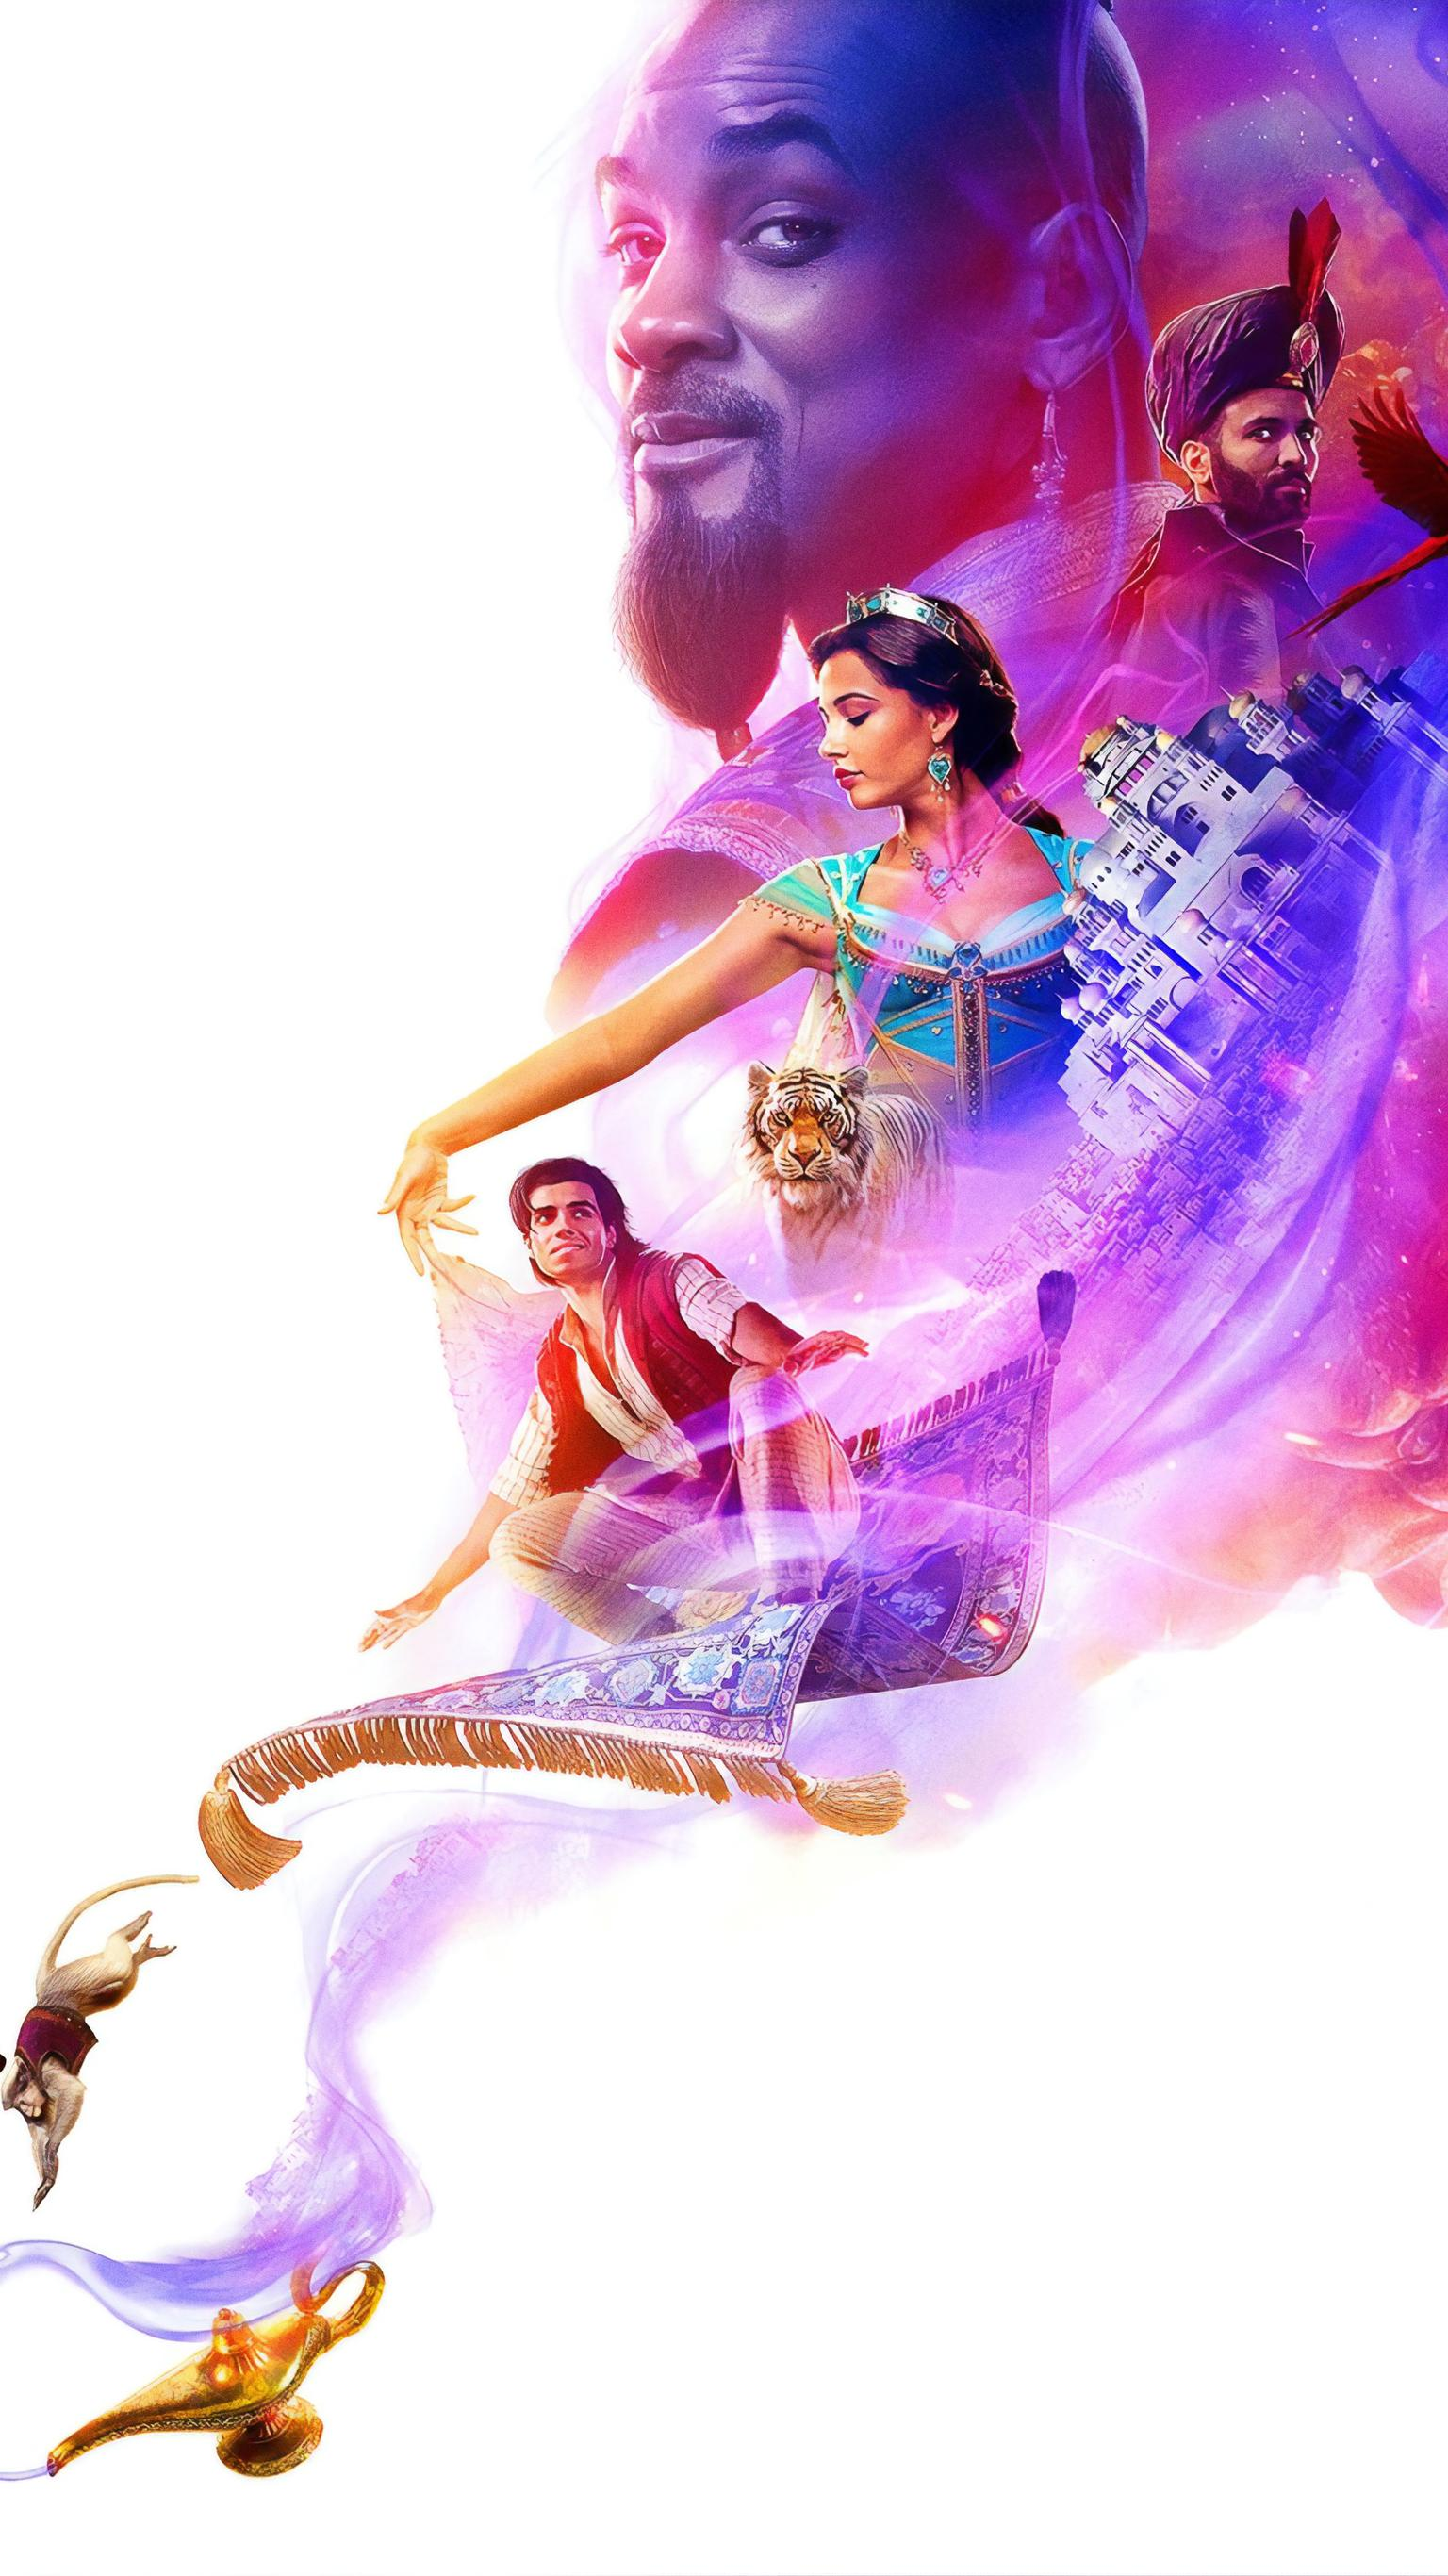 Aladdin 2019 Wallpapers Top Free Aladdin 2019 Backgrounds